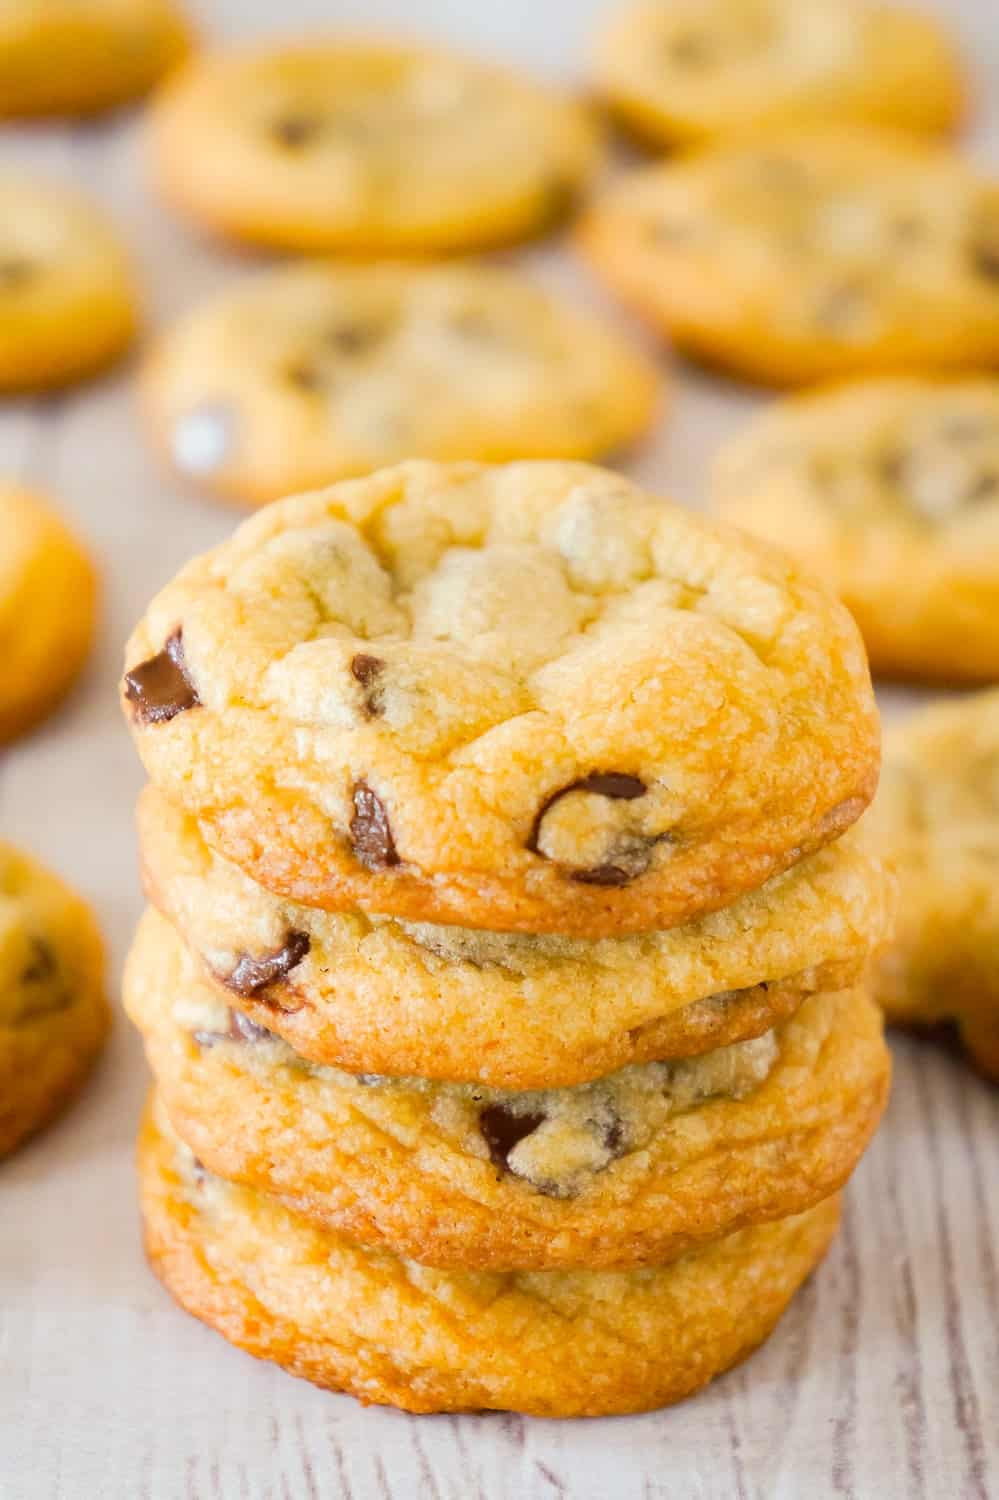 Chocolate Chip Cookies with Crisco are an easy and addictive cookie recipe using Golden Crisco instead of butter. These chewy chocolate chip cookies are loaded with semi sweet chocolate chips.